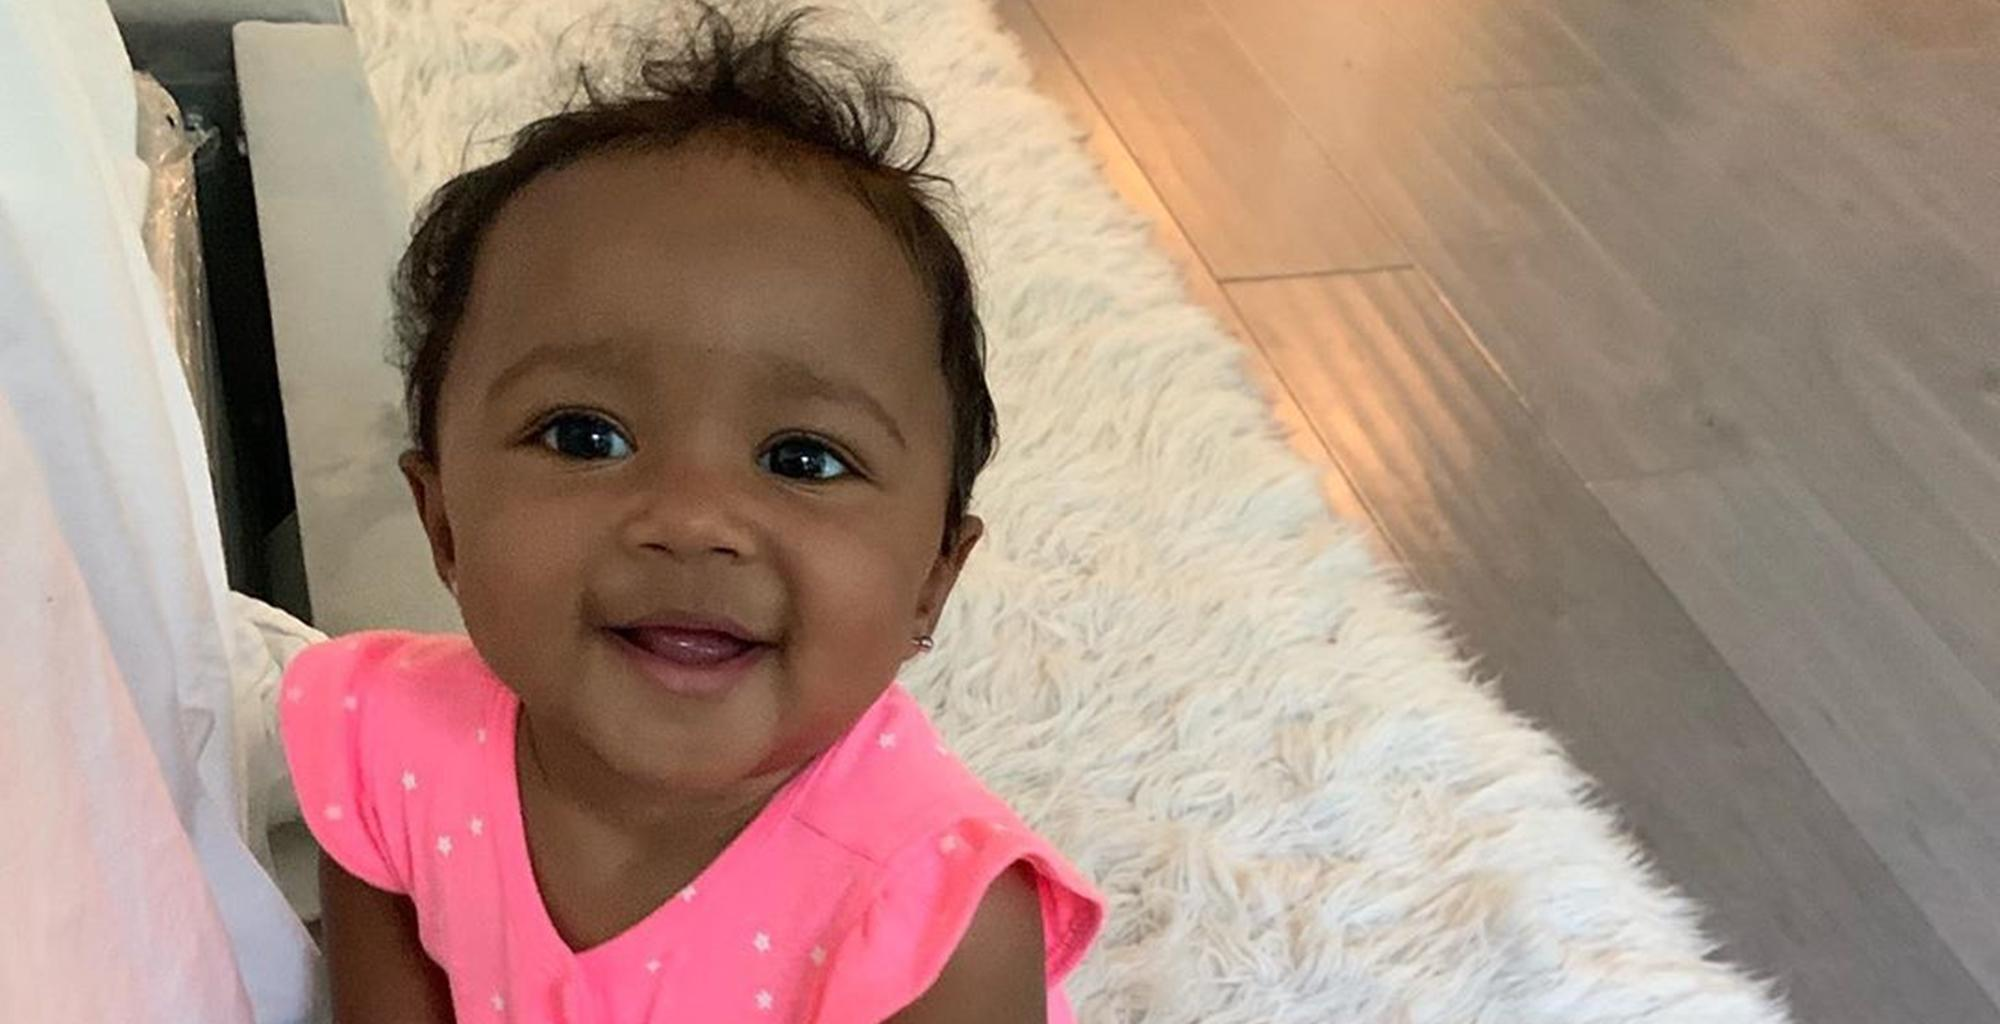 Kenya Moore Shares Picture Of Baby Brooklyn Daly In Beautiful Church Dress -- Marc Daly's Wife Is Praised For The Wholesome Way She Is Raising Her